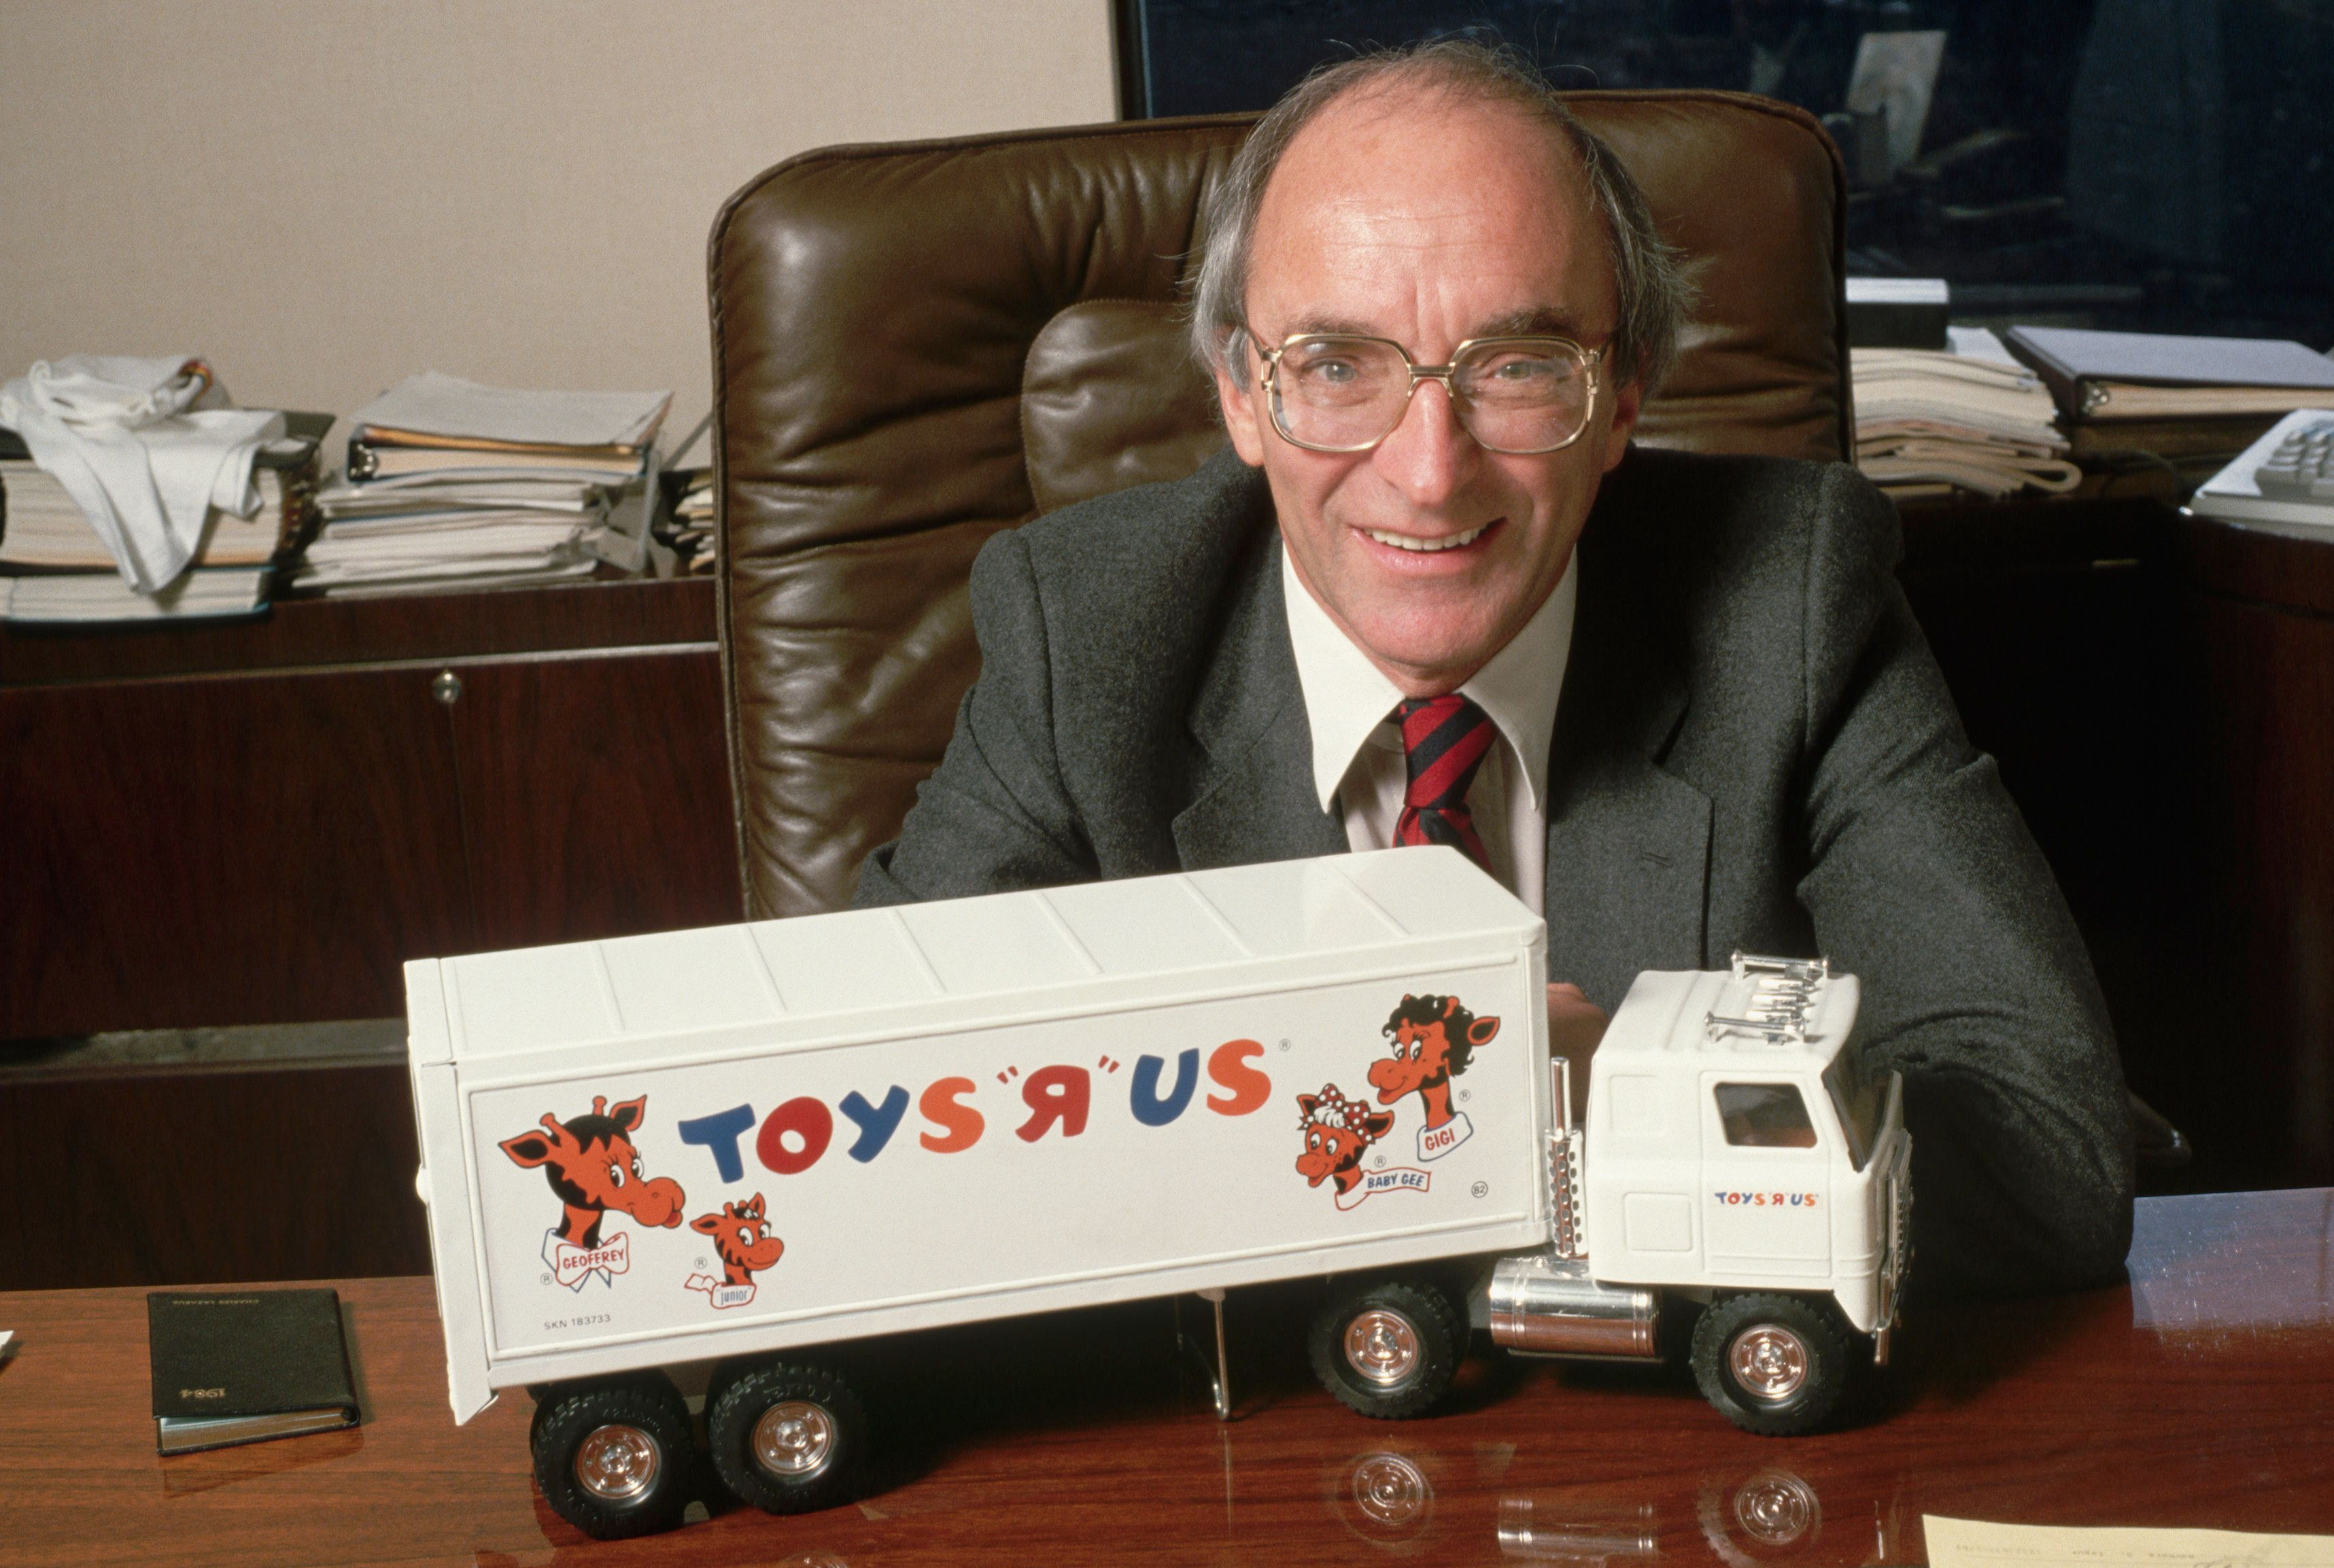 Charles Lazarus with Toy Truck (Photo by �� Jacques M. Chenet/CORBIS/Corbis via Getty Images)